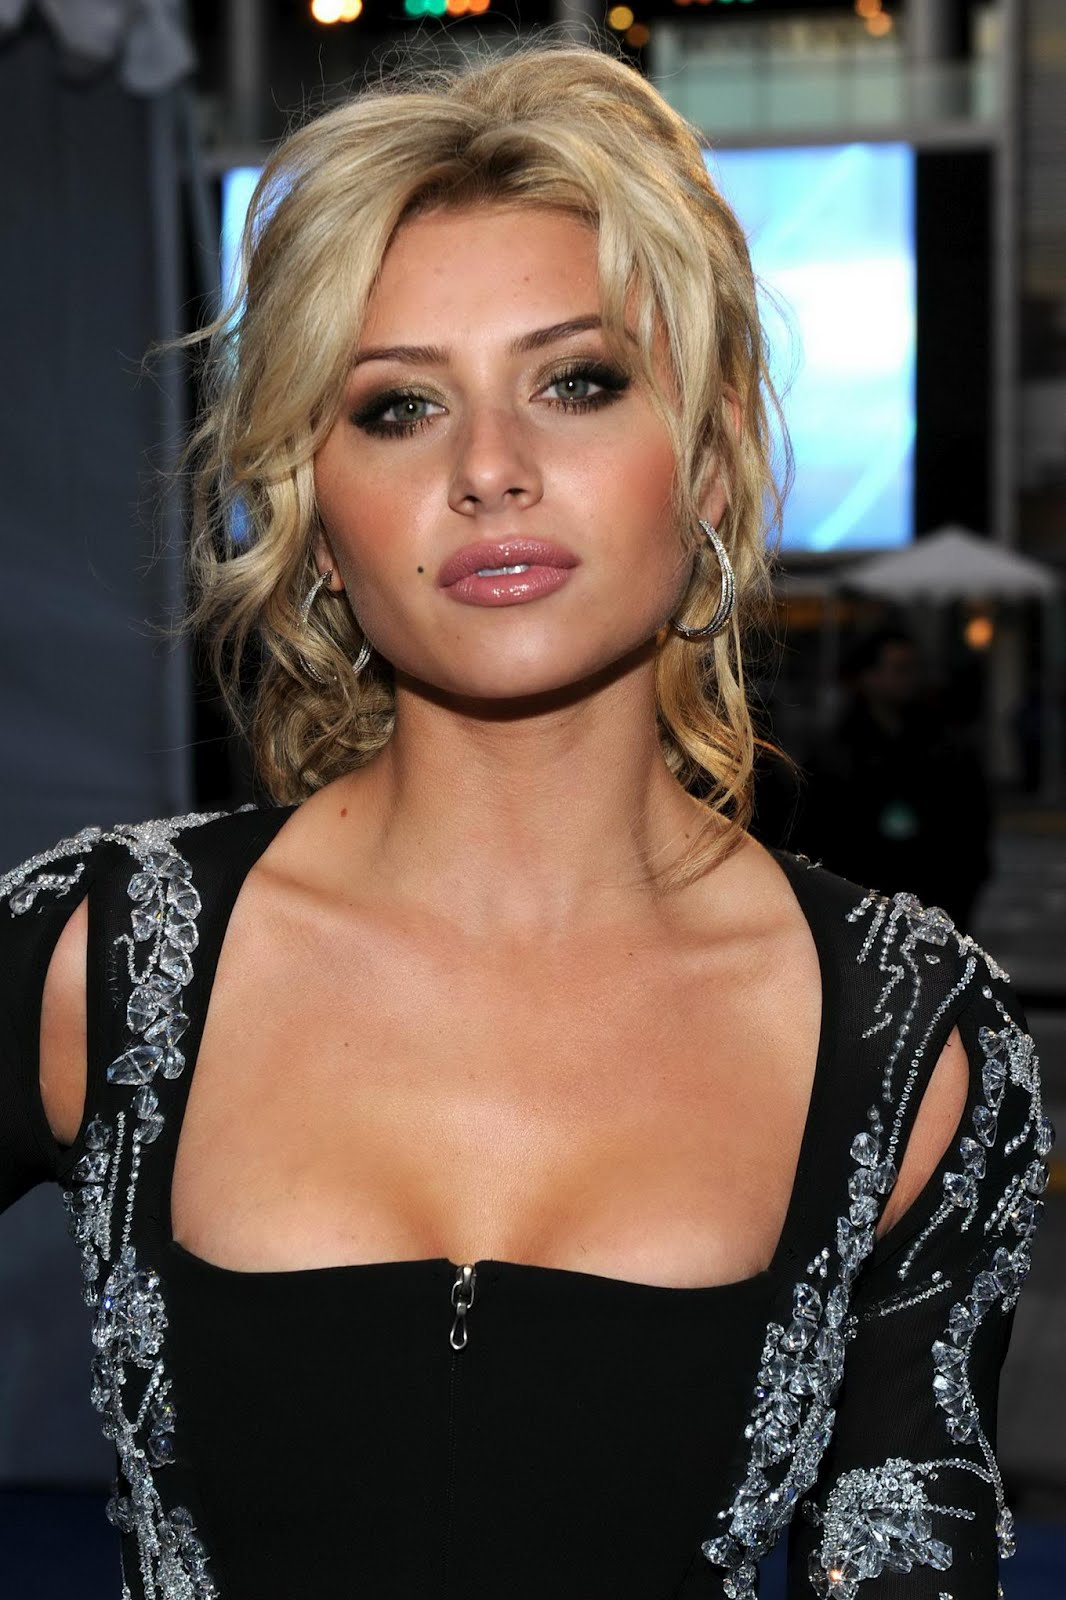 Aly Michalka Sex sexy actress nude: alyson michalka-nude